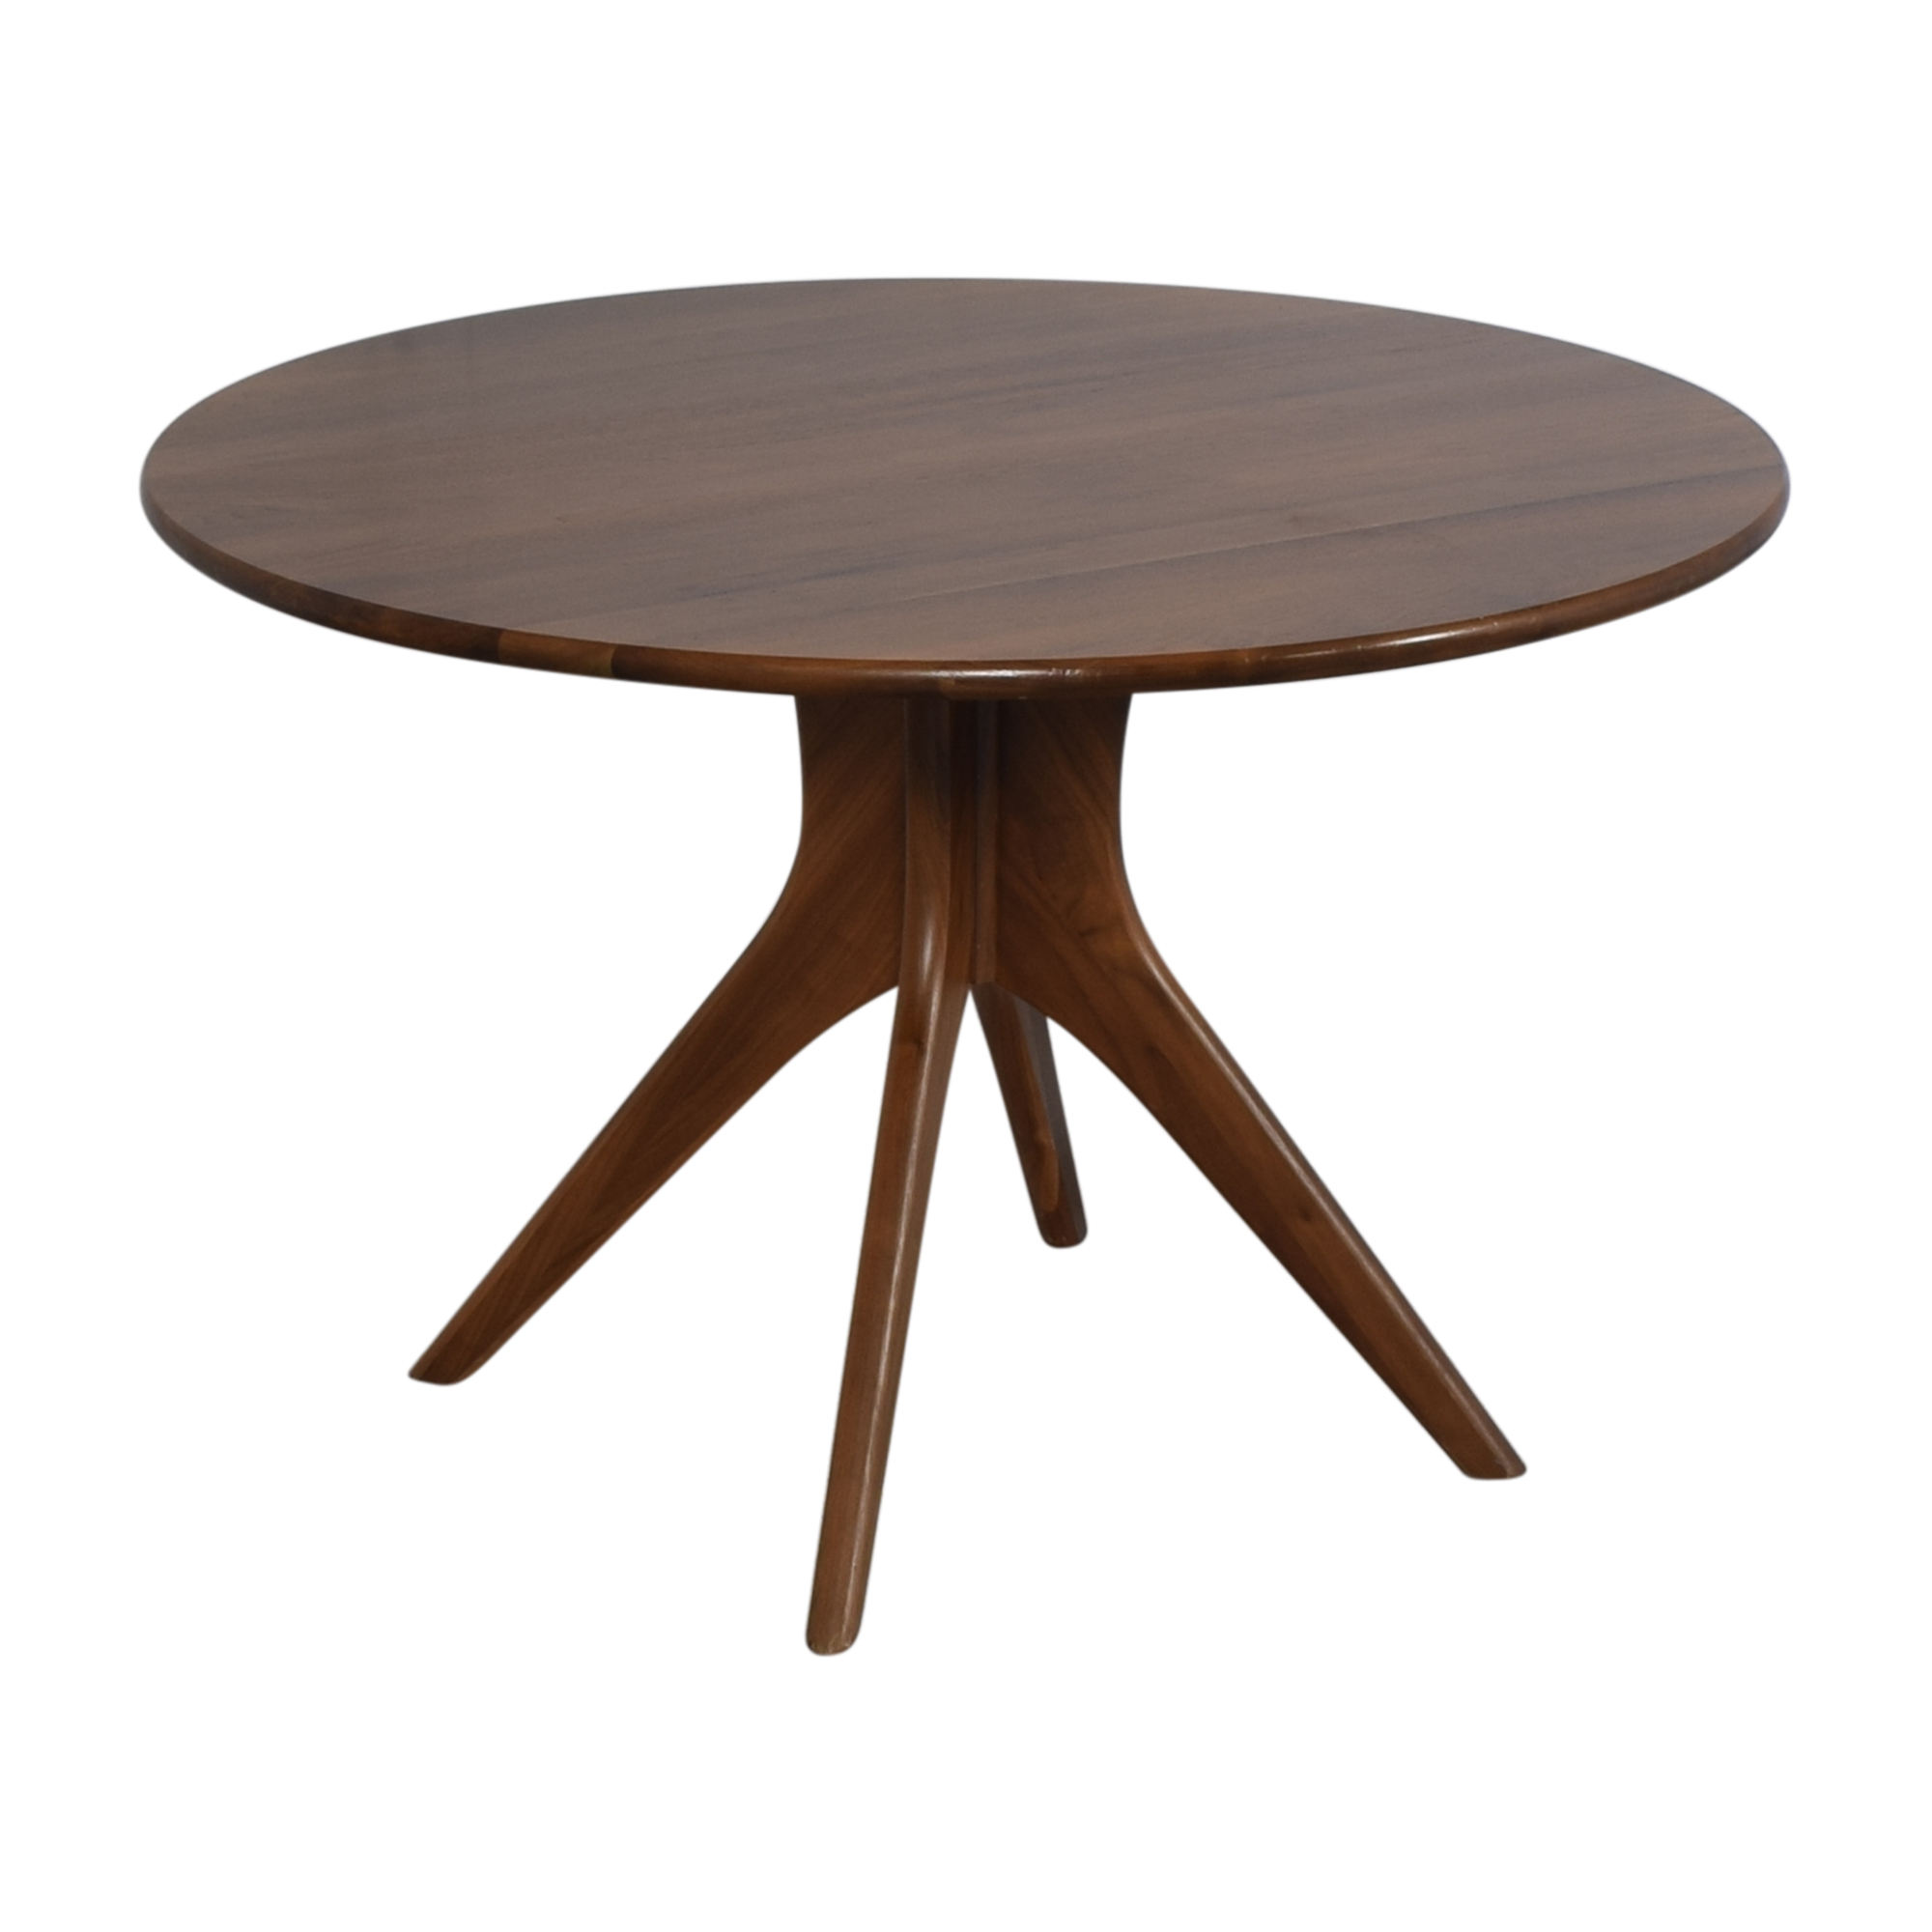 Room & Board Room & Board Round Table price